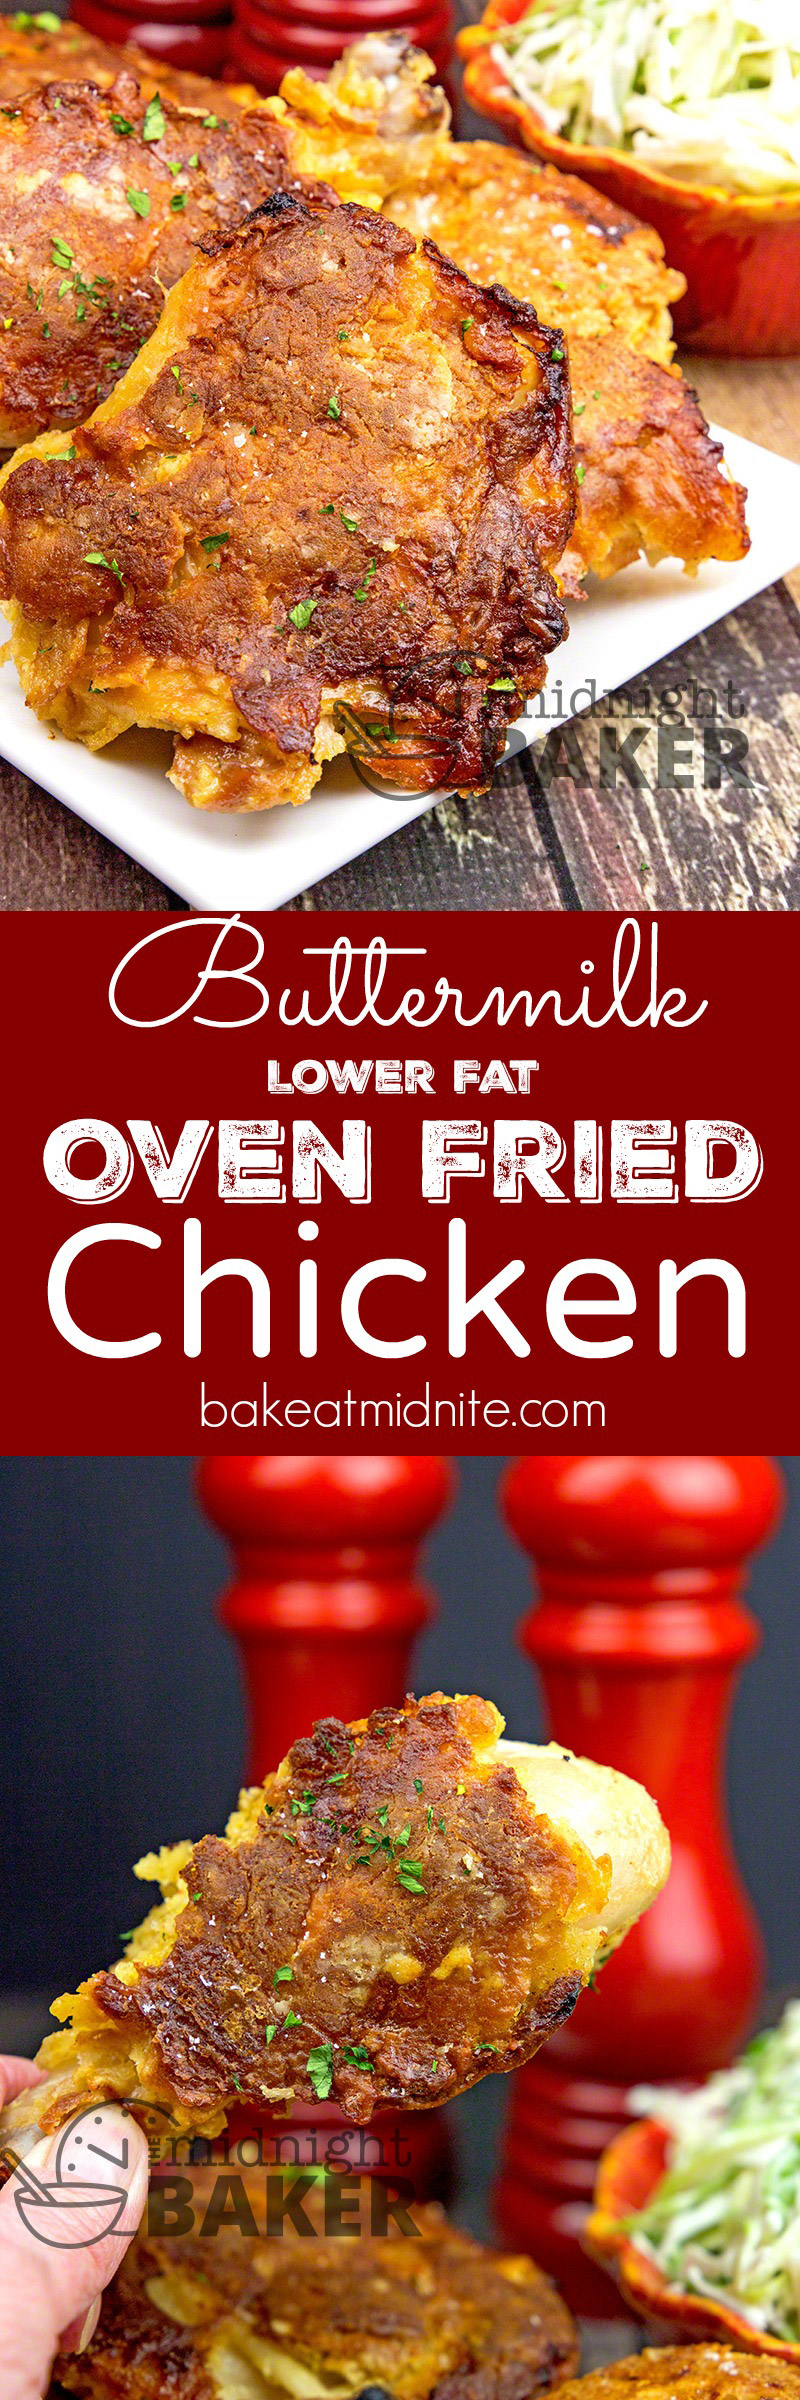 Oven fried chicken double dipped in buttermilk and a tasty coating. Only 1 tablespoon of oil for a whole tray! Naturally low fat!